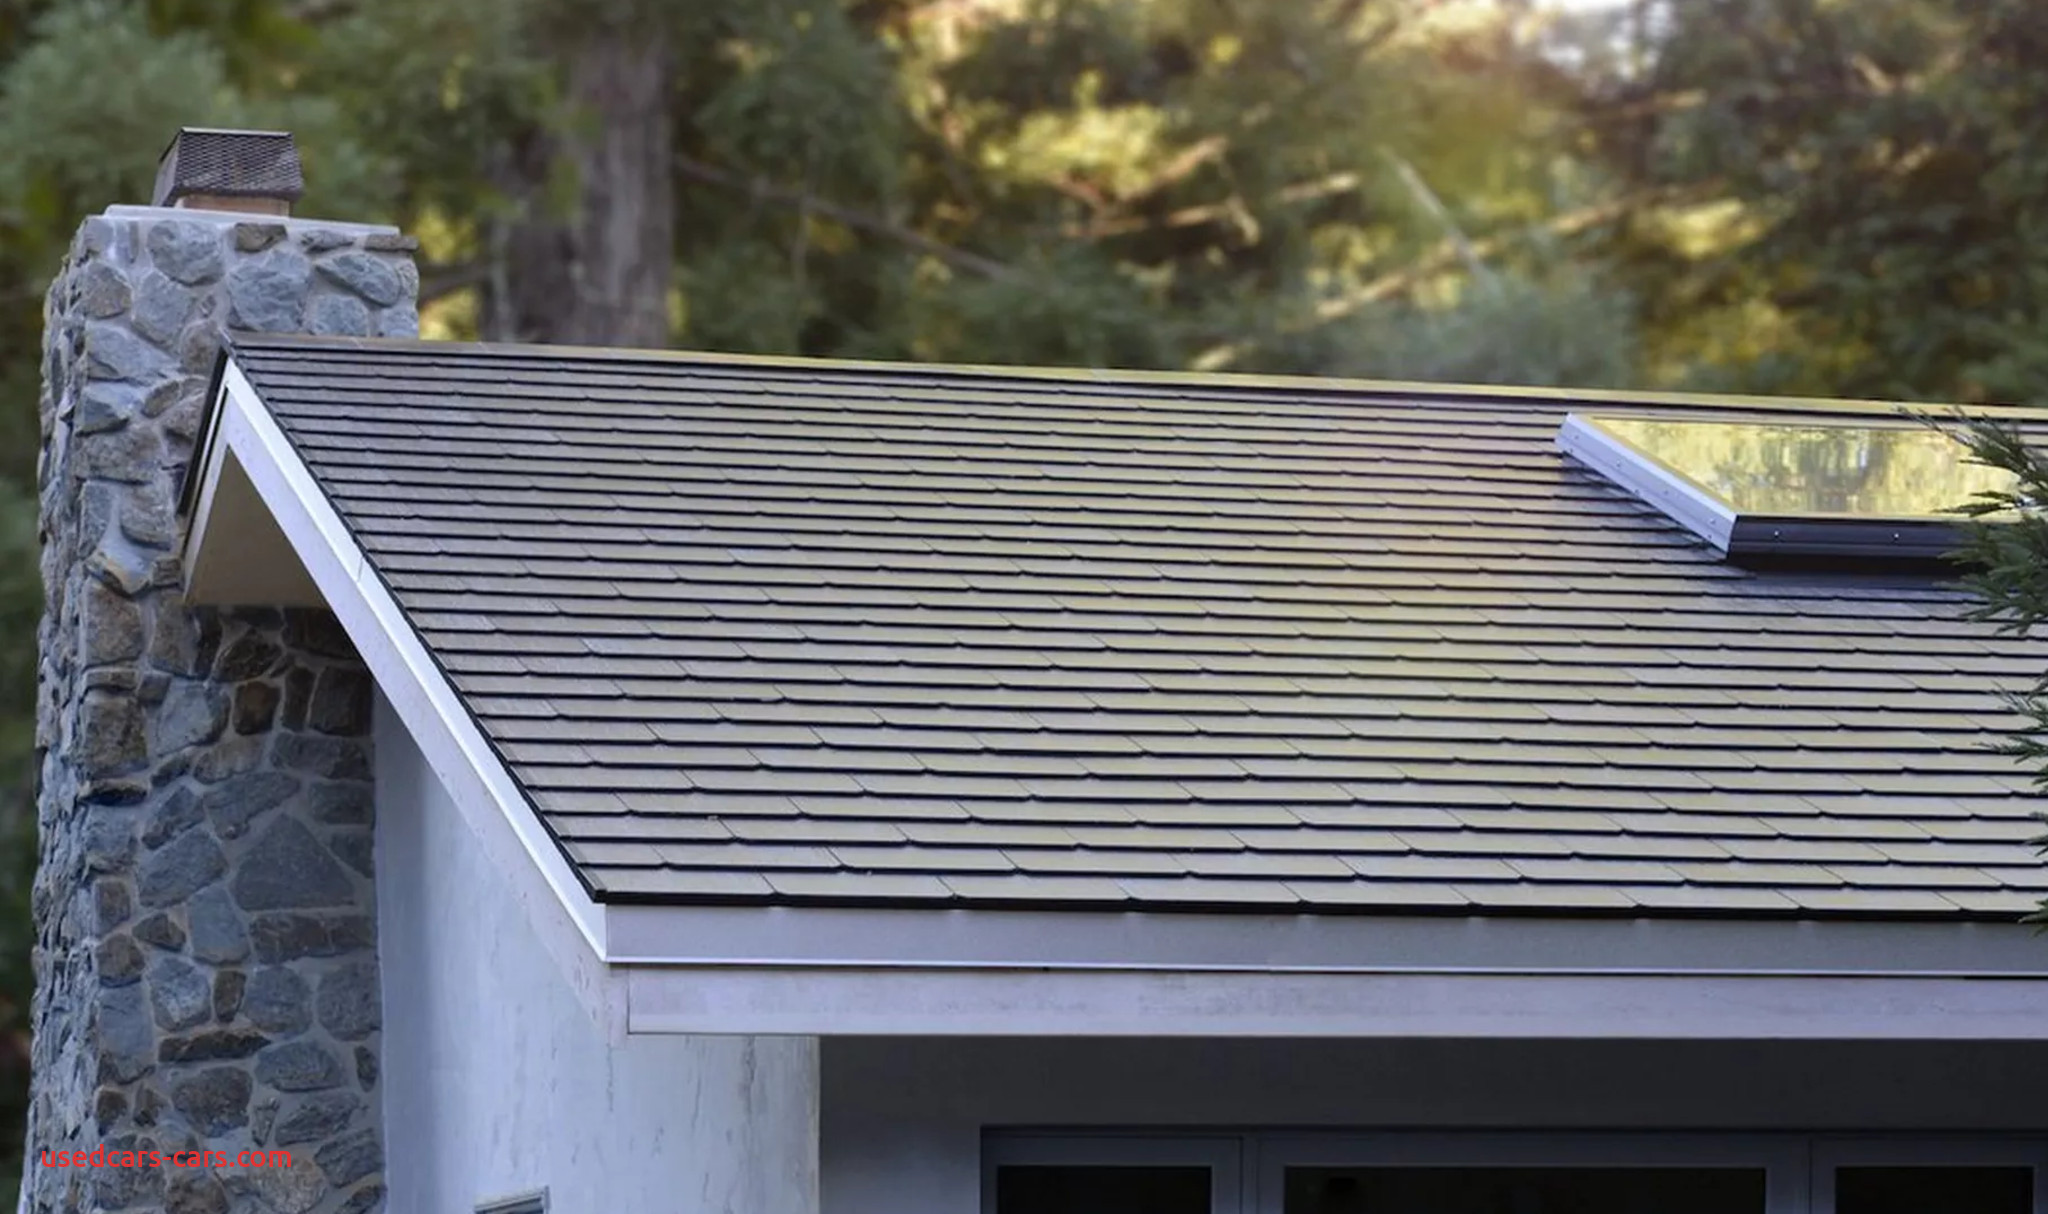 Tesla Roof Lovely Musk Reads 2019 is the Year Of the Tesla solar Roof